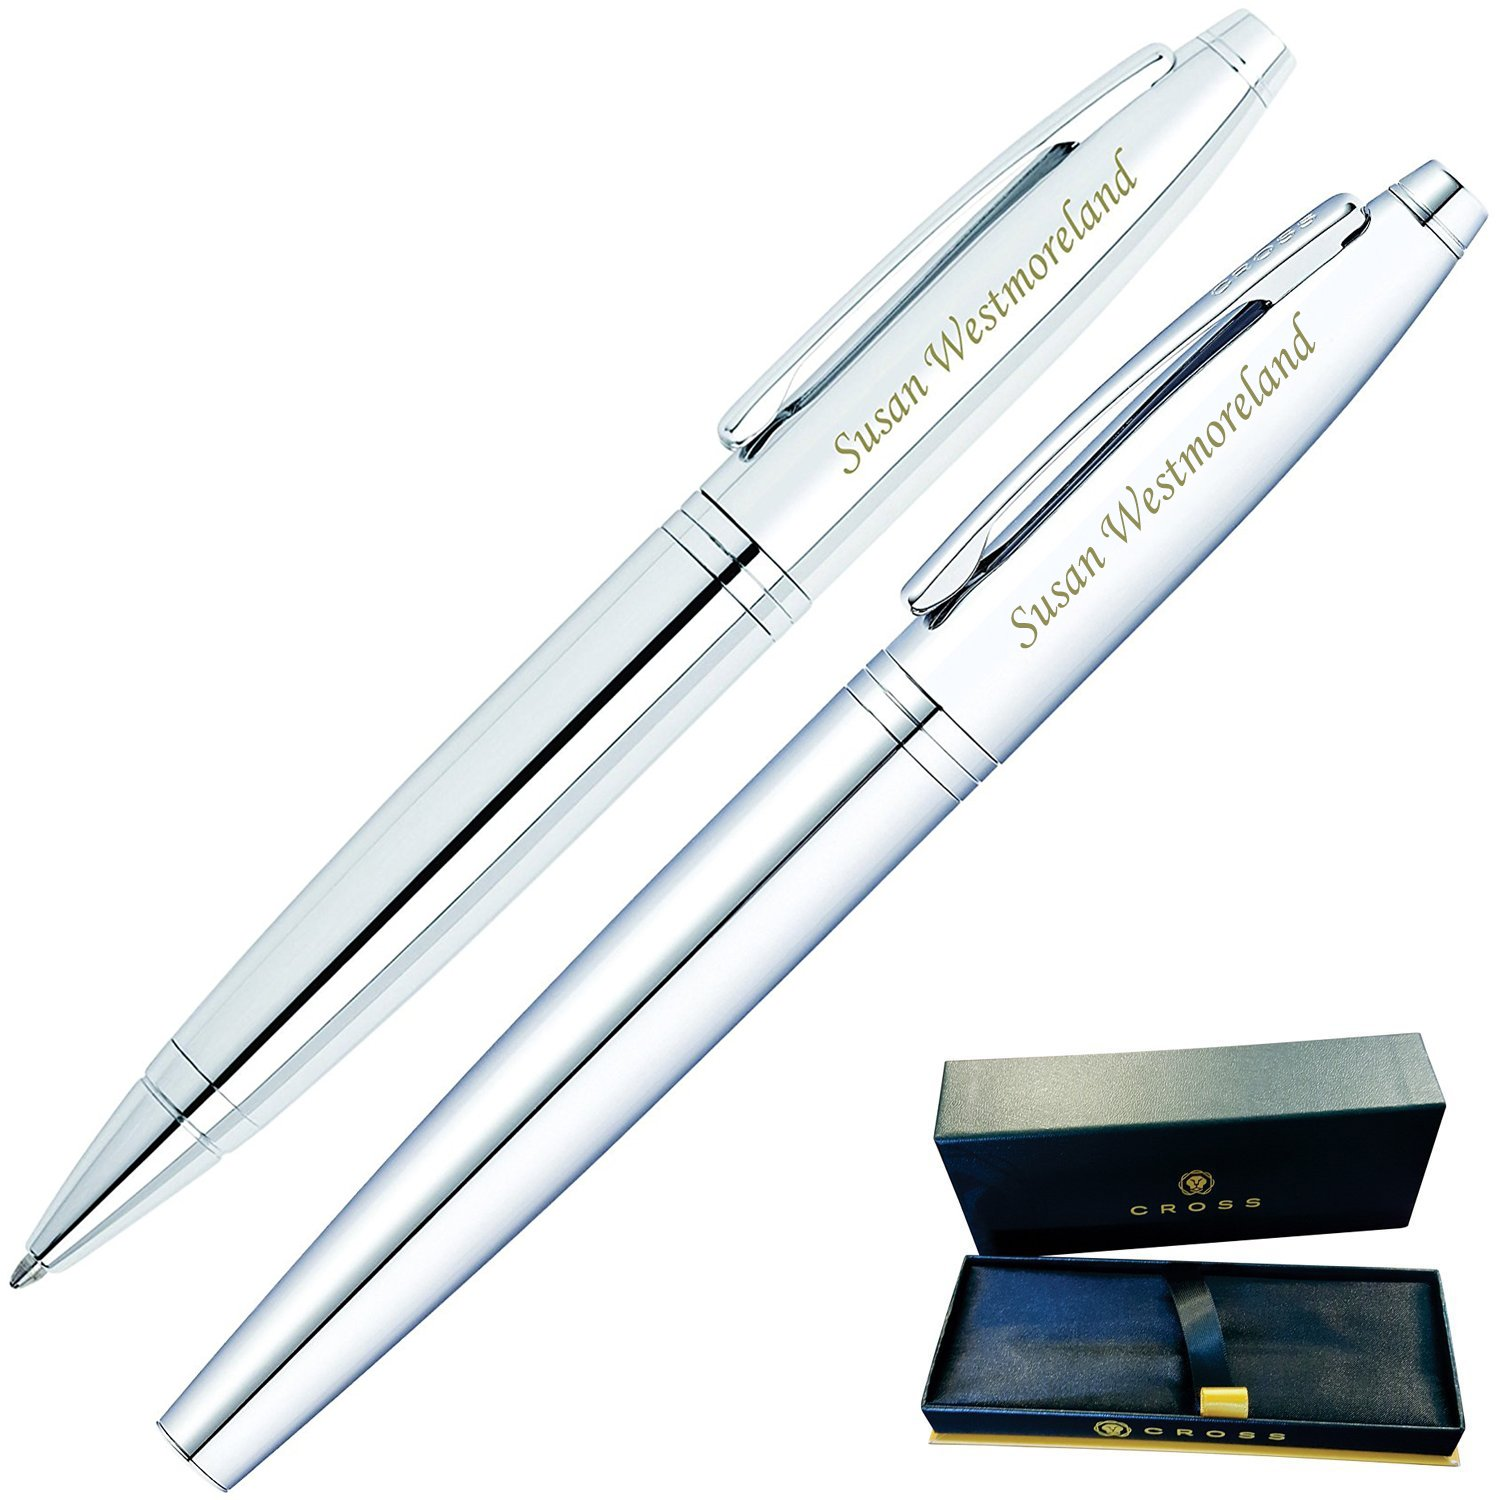 Dayspring Pens | Engraved/Personalized Cross Calais Ballpoint and Rollerball Double Pen Gift Set with Case - Chrome